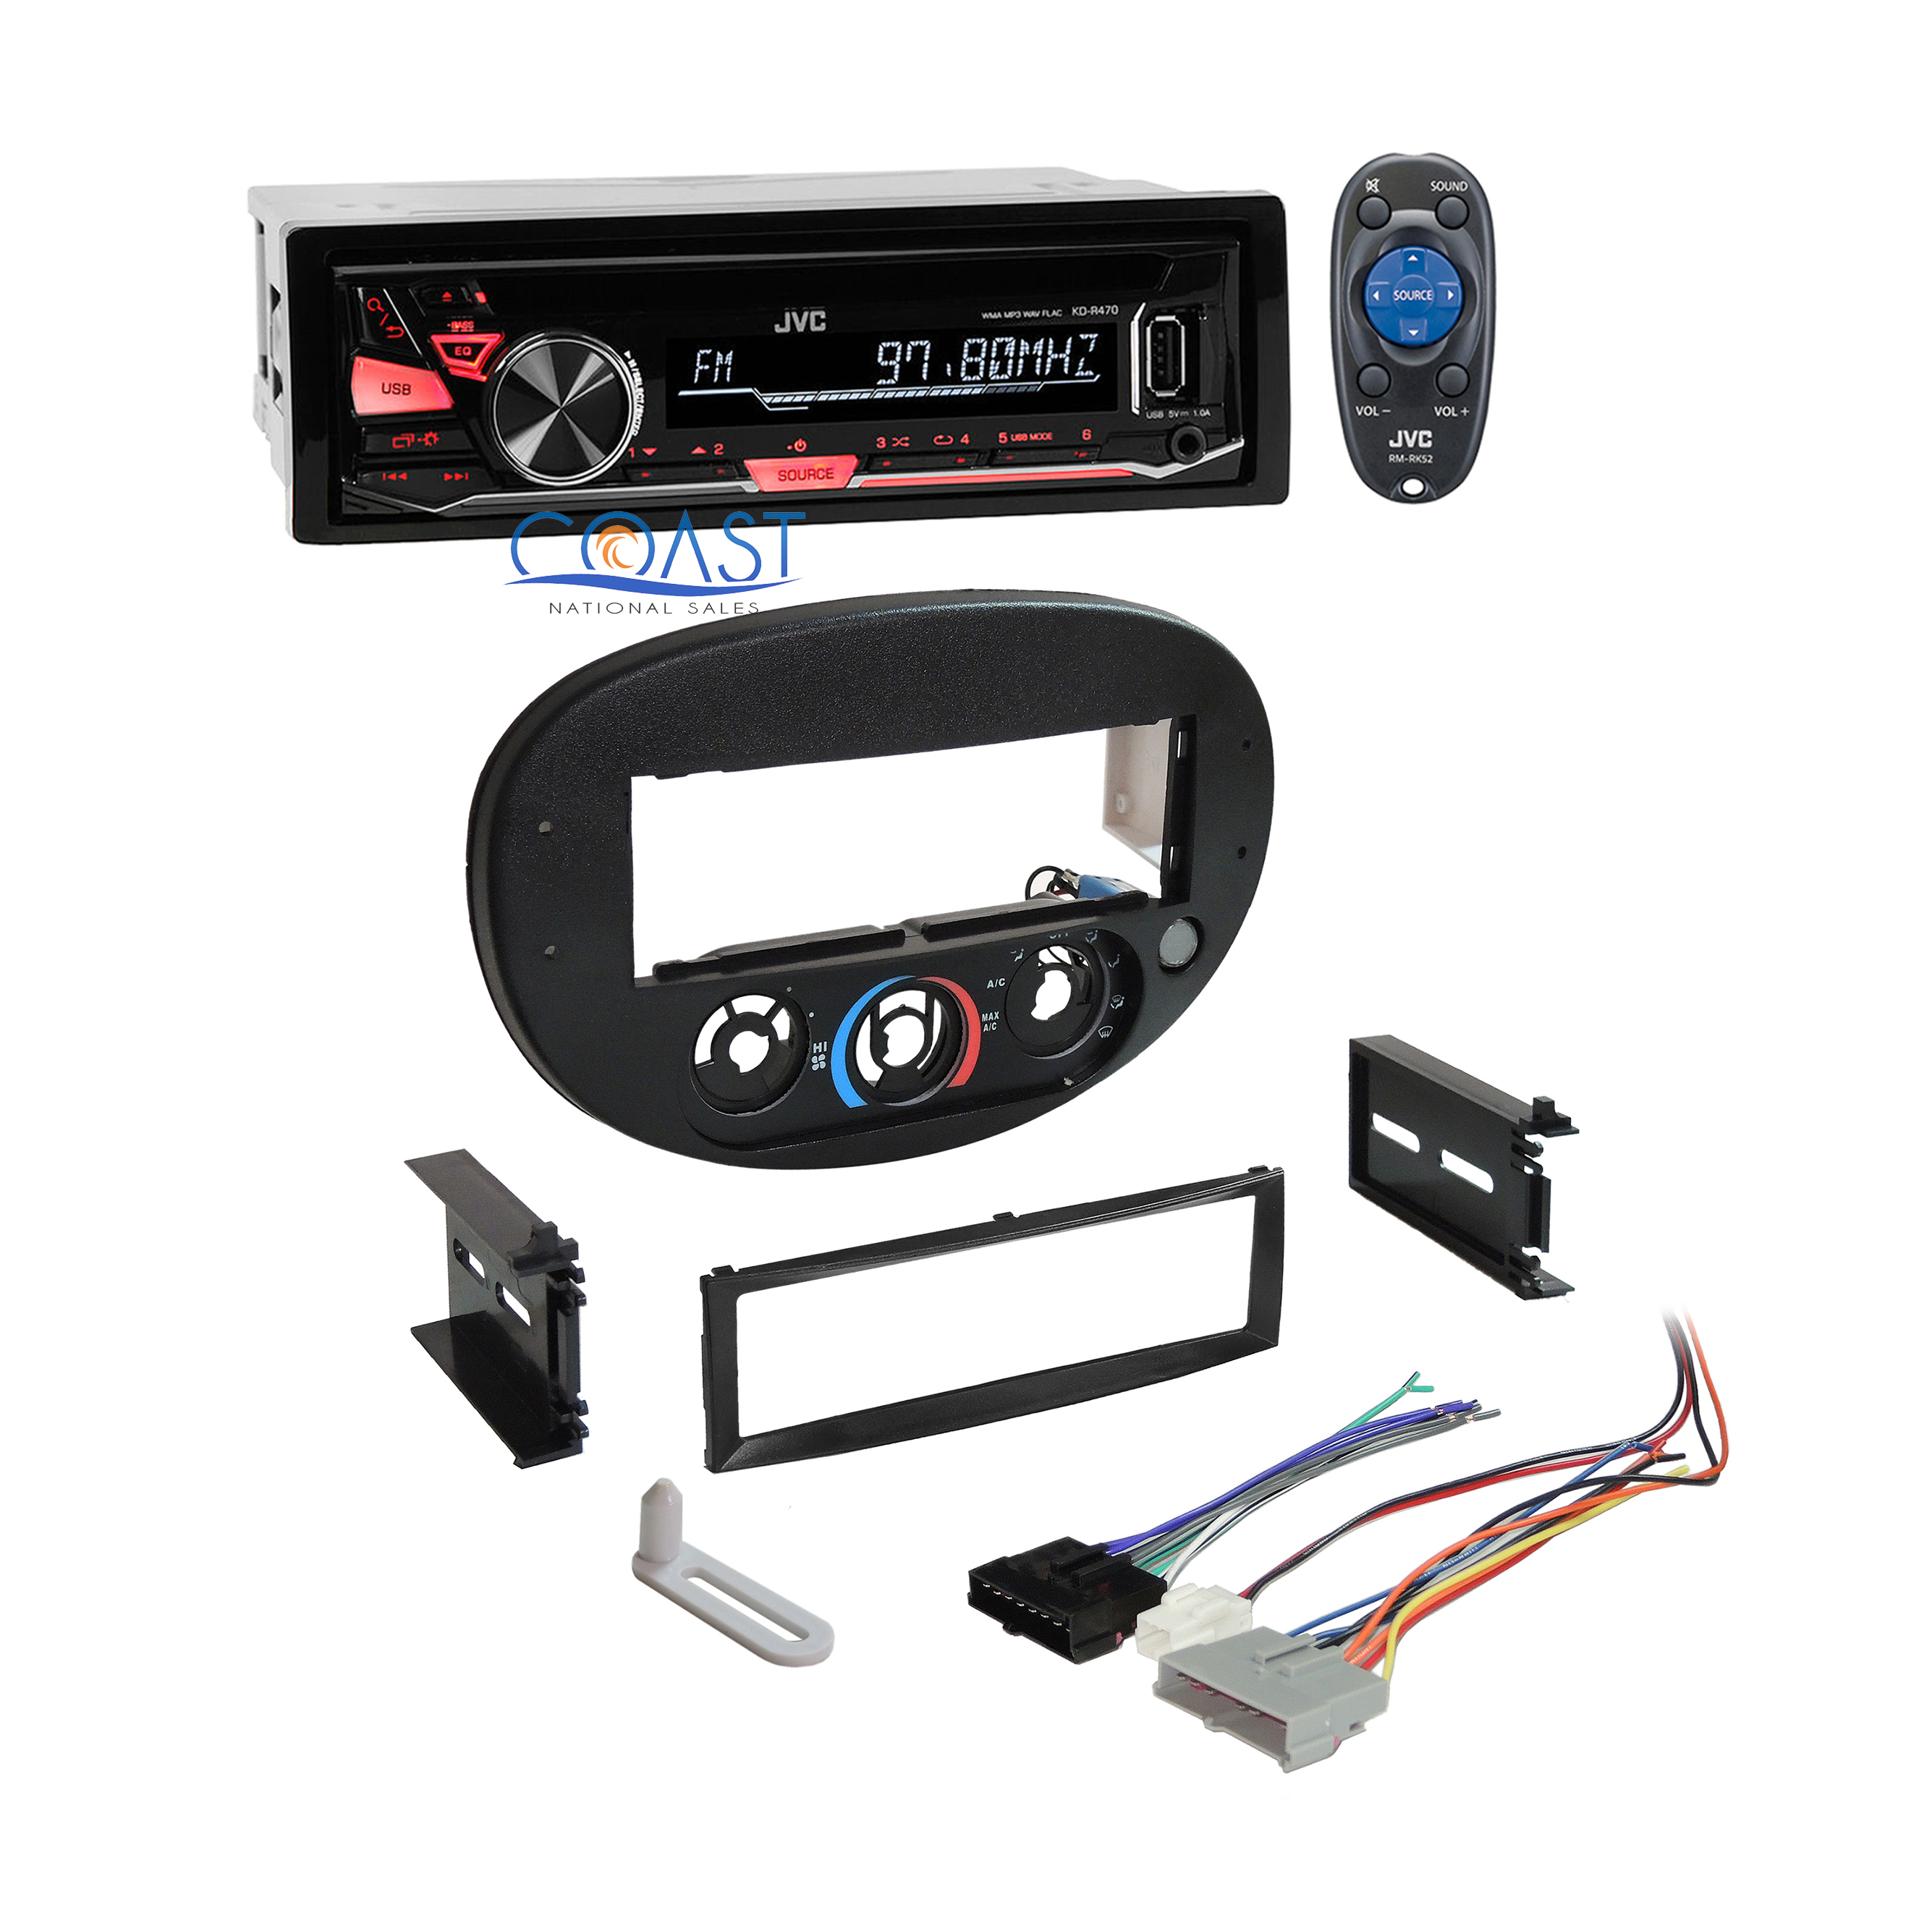 jvc car radio stereo single din dash kit wire harness for. Black Bedroom Furniture Sets. Home Design Ideas